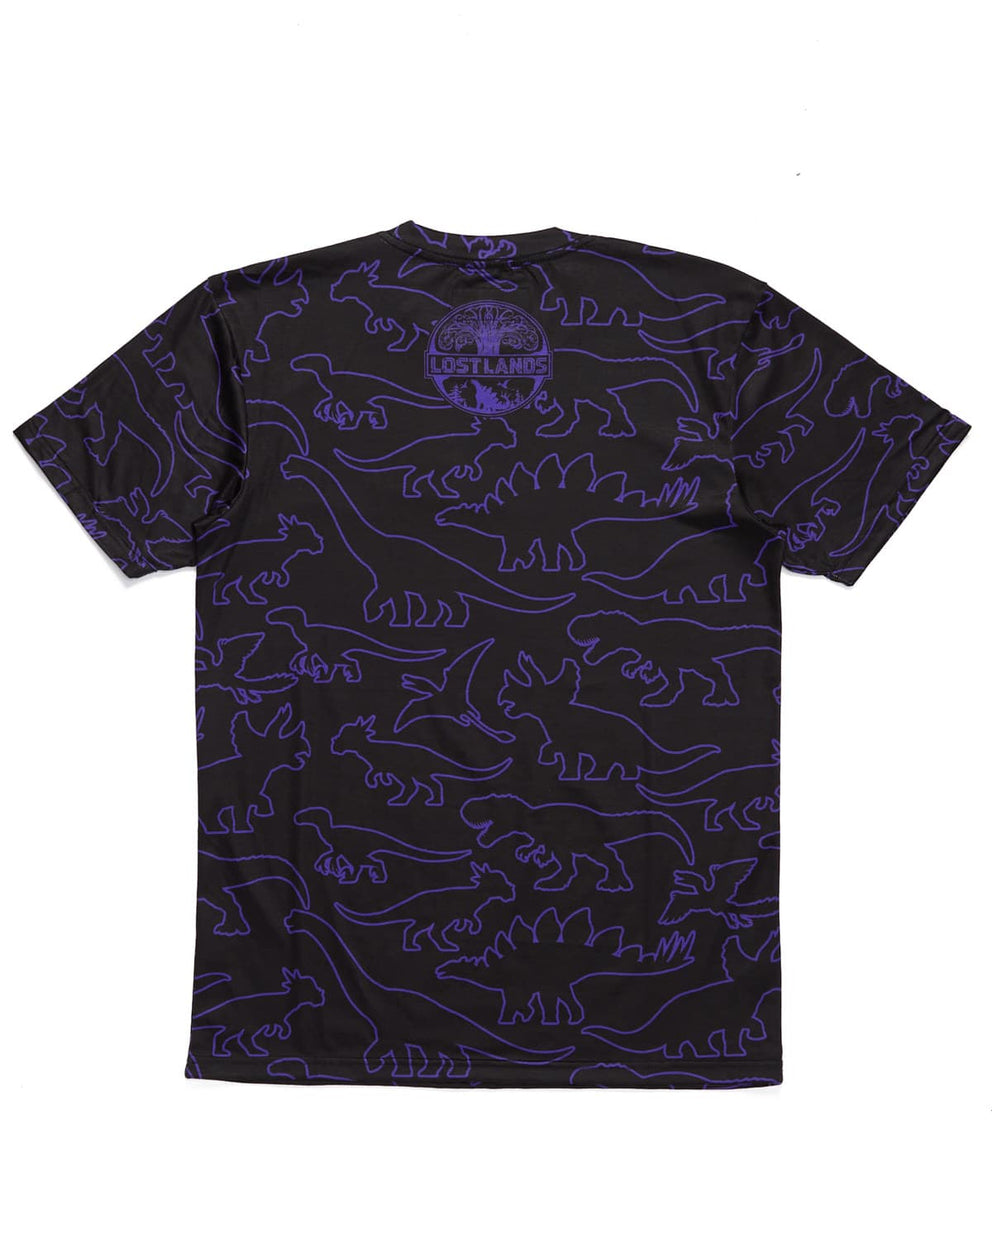 'Dino Pattern' Dye Sub Tee - Black/Purple